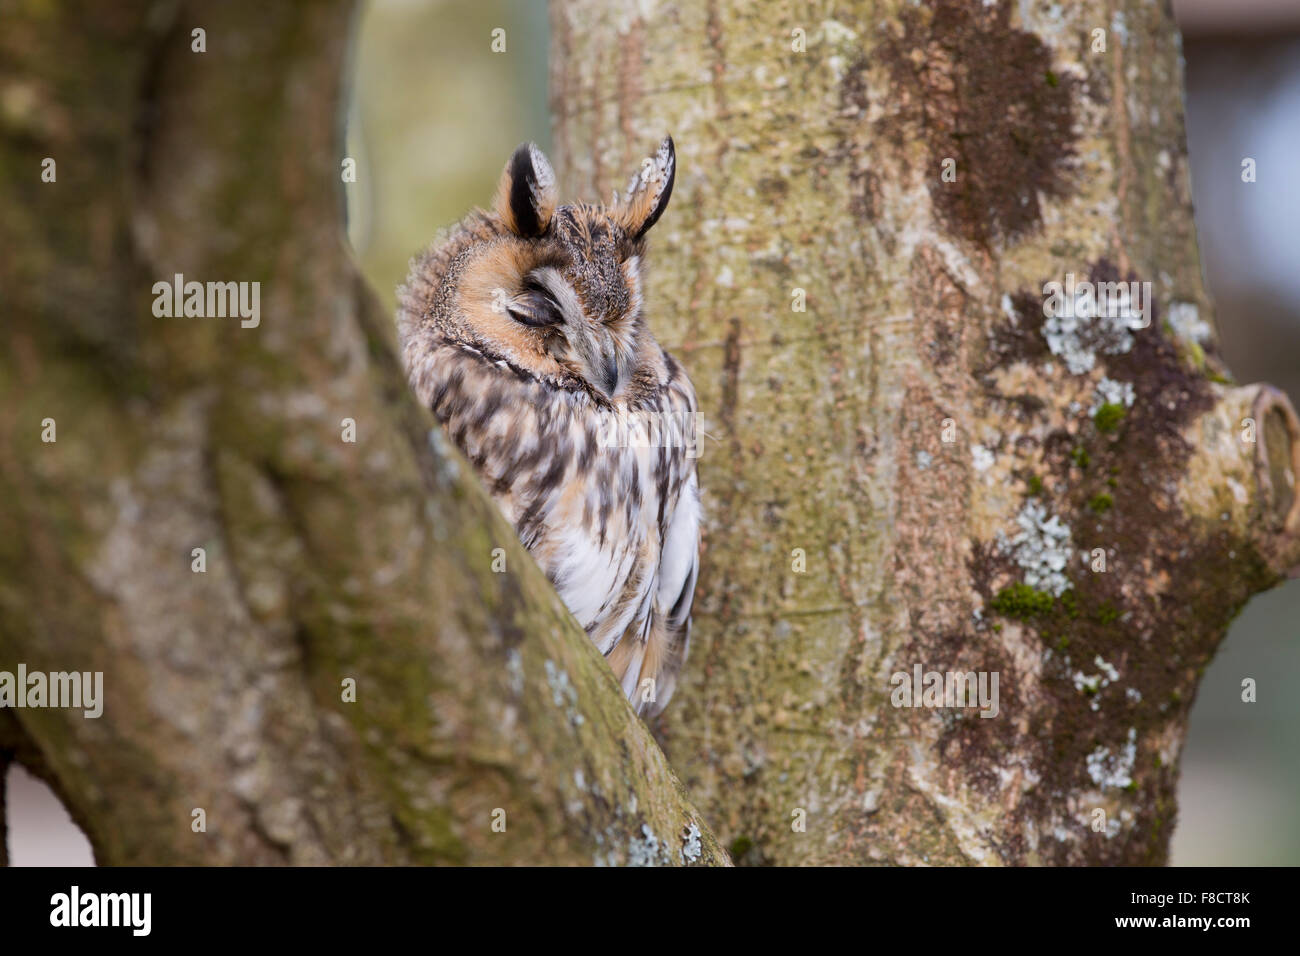 Long Eared Owl; Asio otus Single with Eyes closed; Cornwall; UK - Stock Image